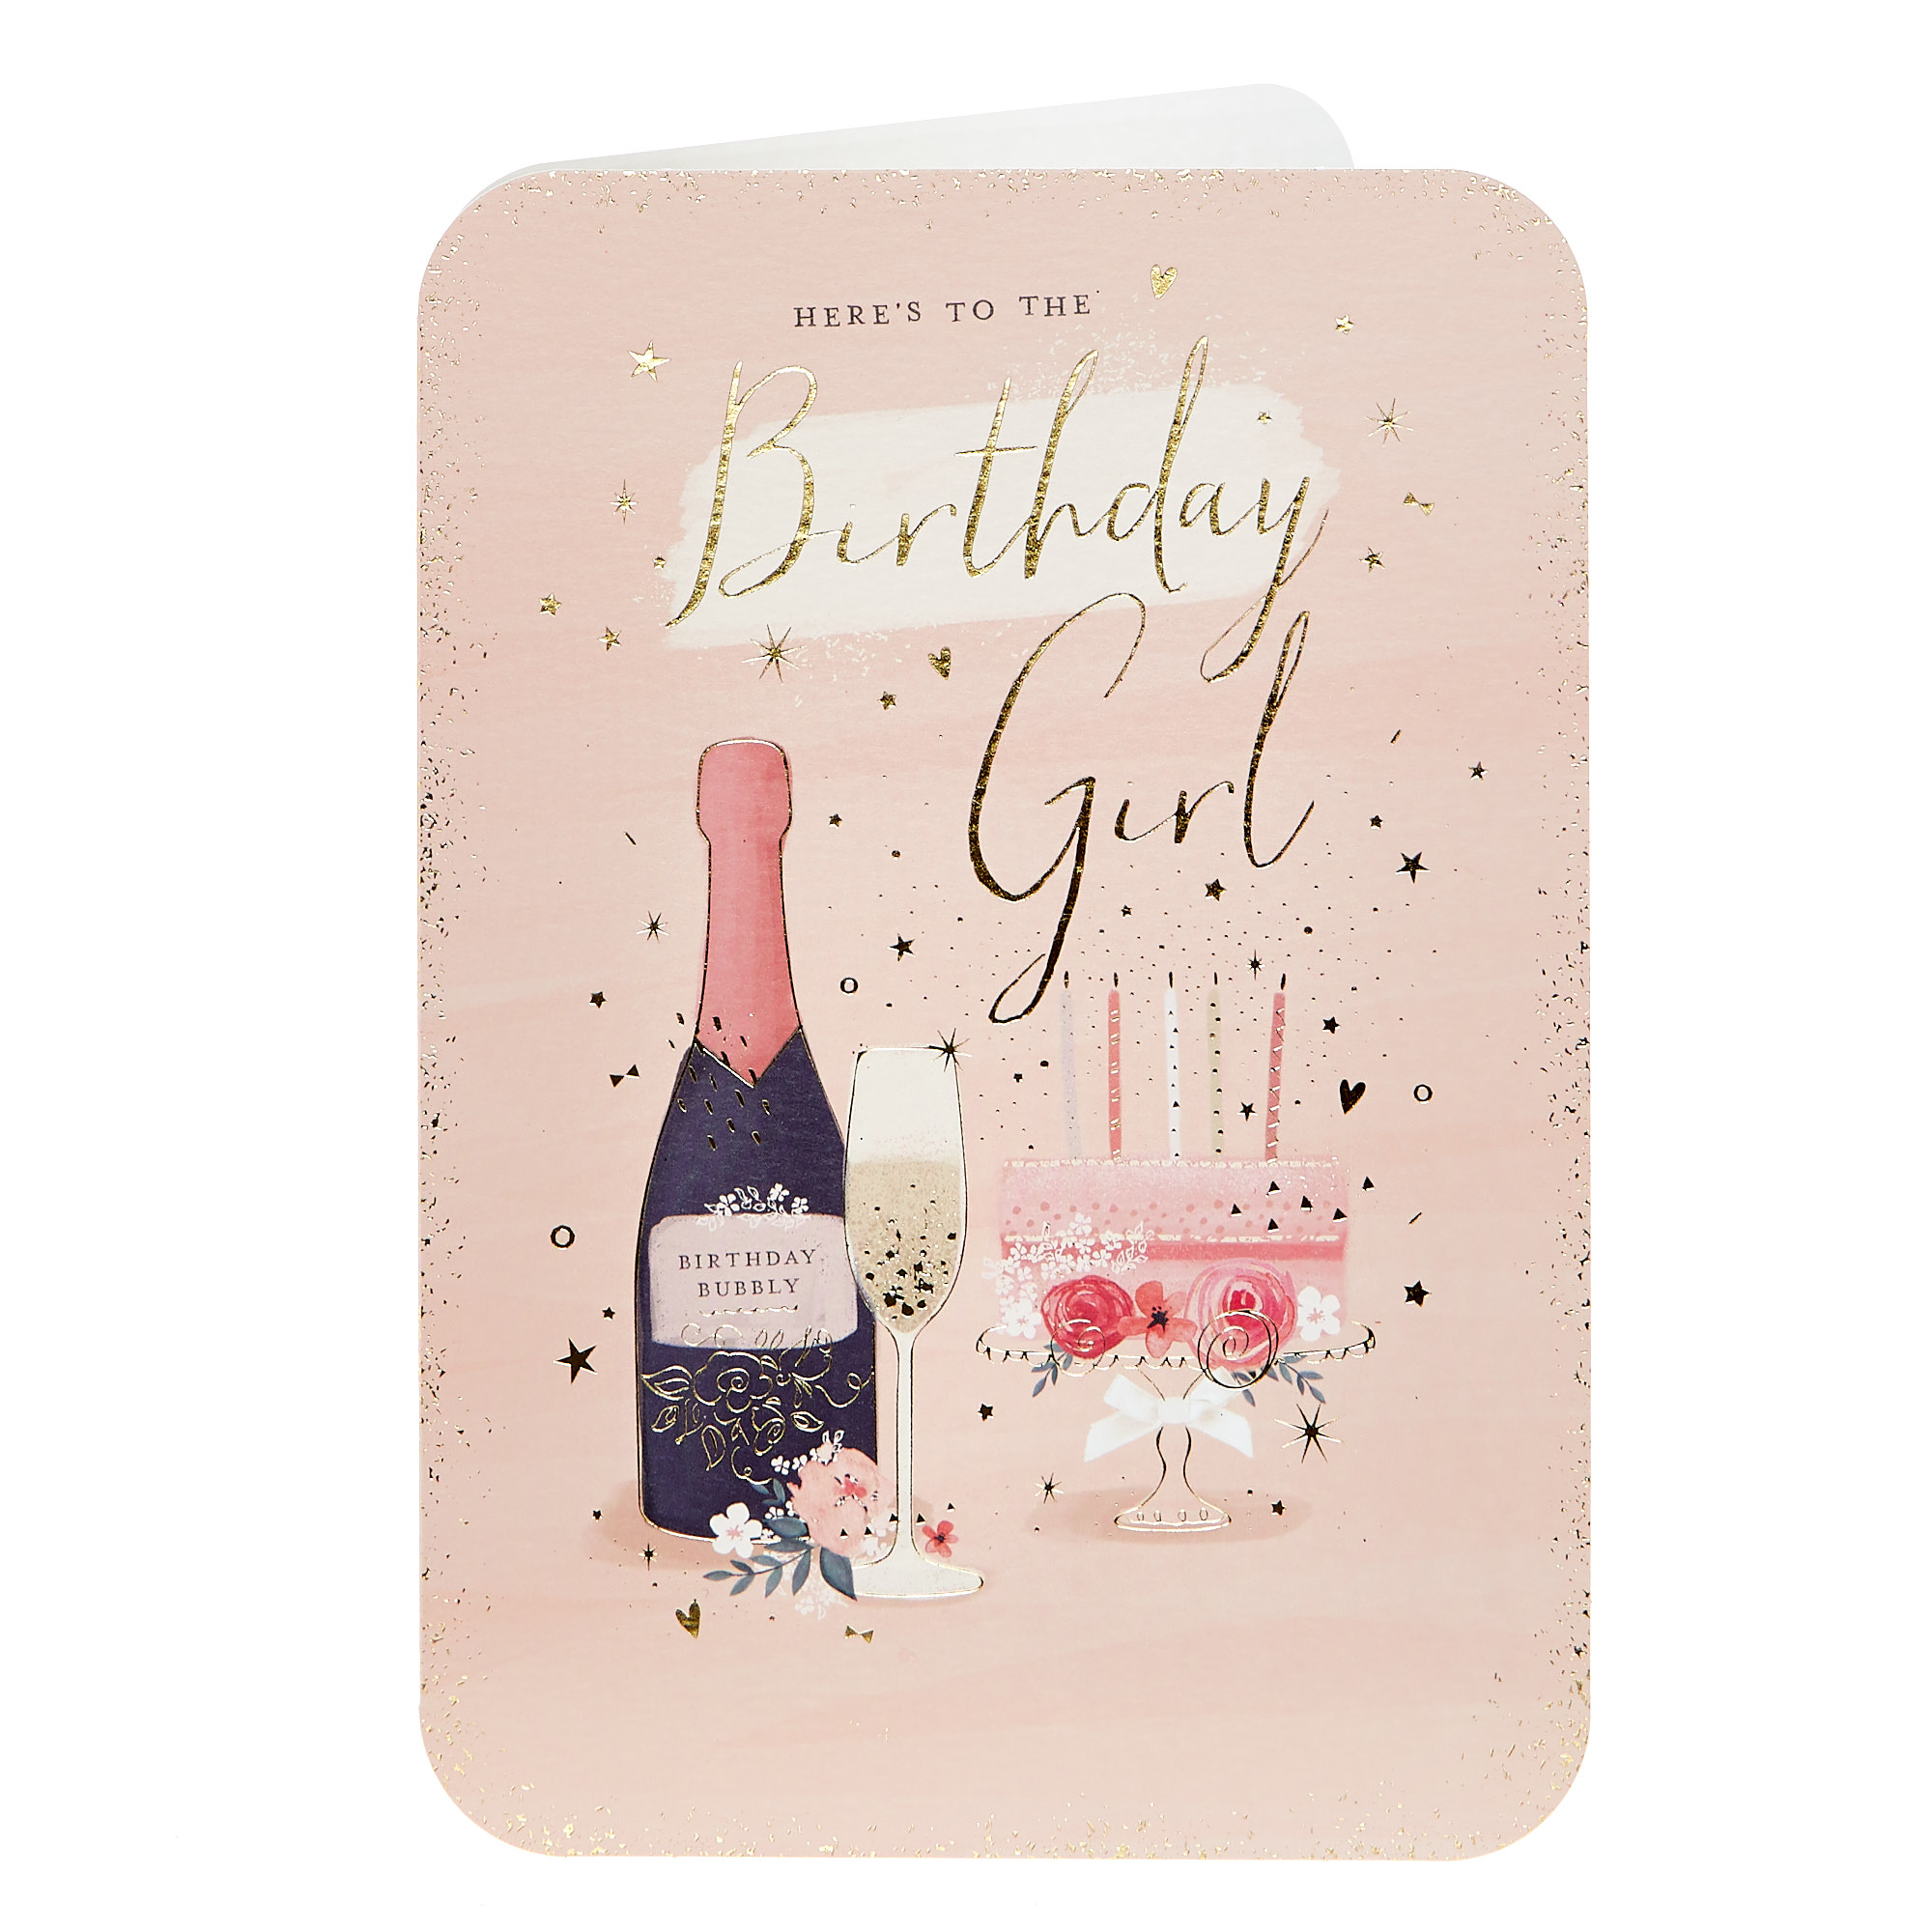 Birthday Card - Here's To The Birthday Girl